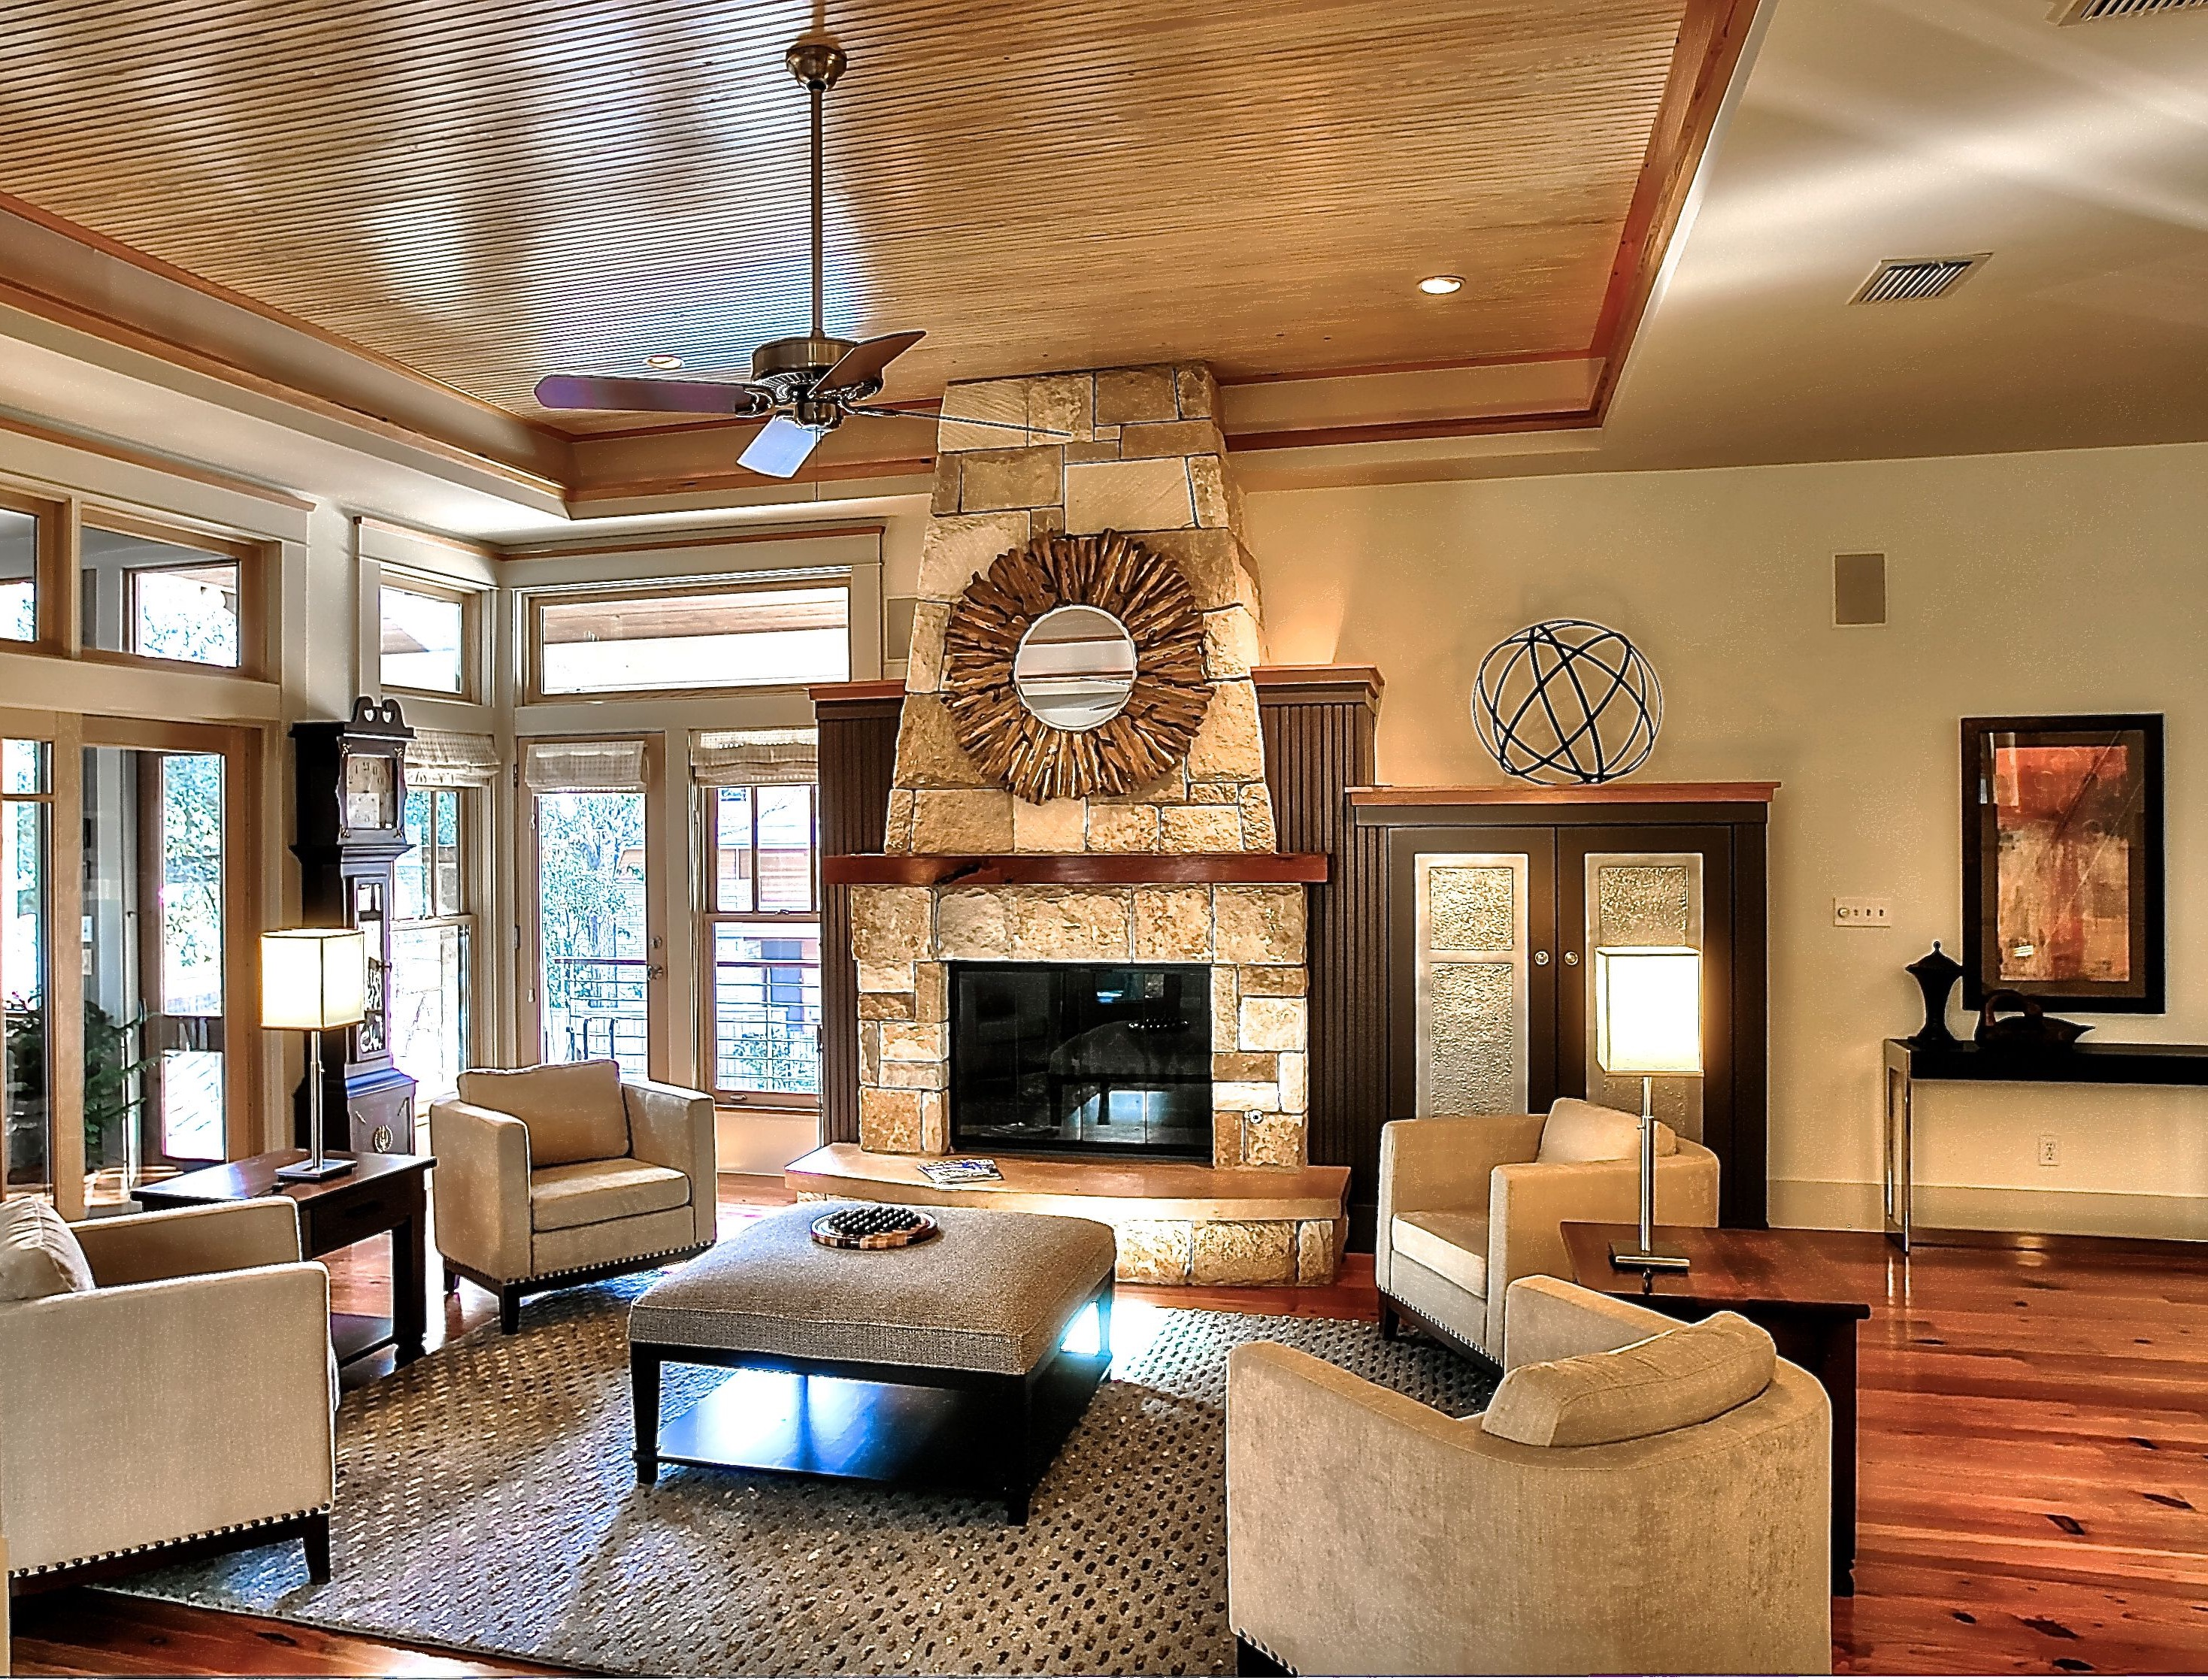 Rustic Interior Design Ideas Living Room Rustic Living Room Interior Lighting Ideas Modern Home